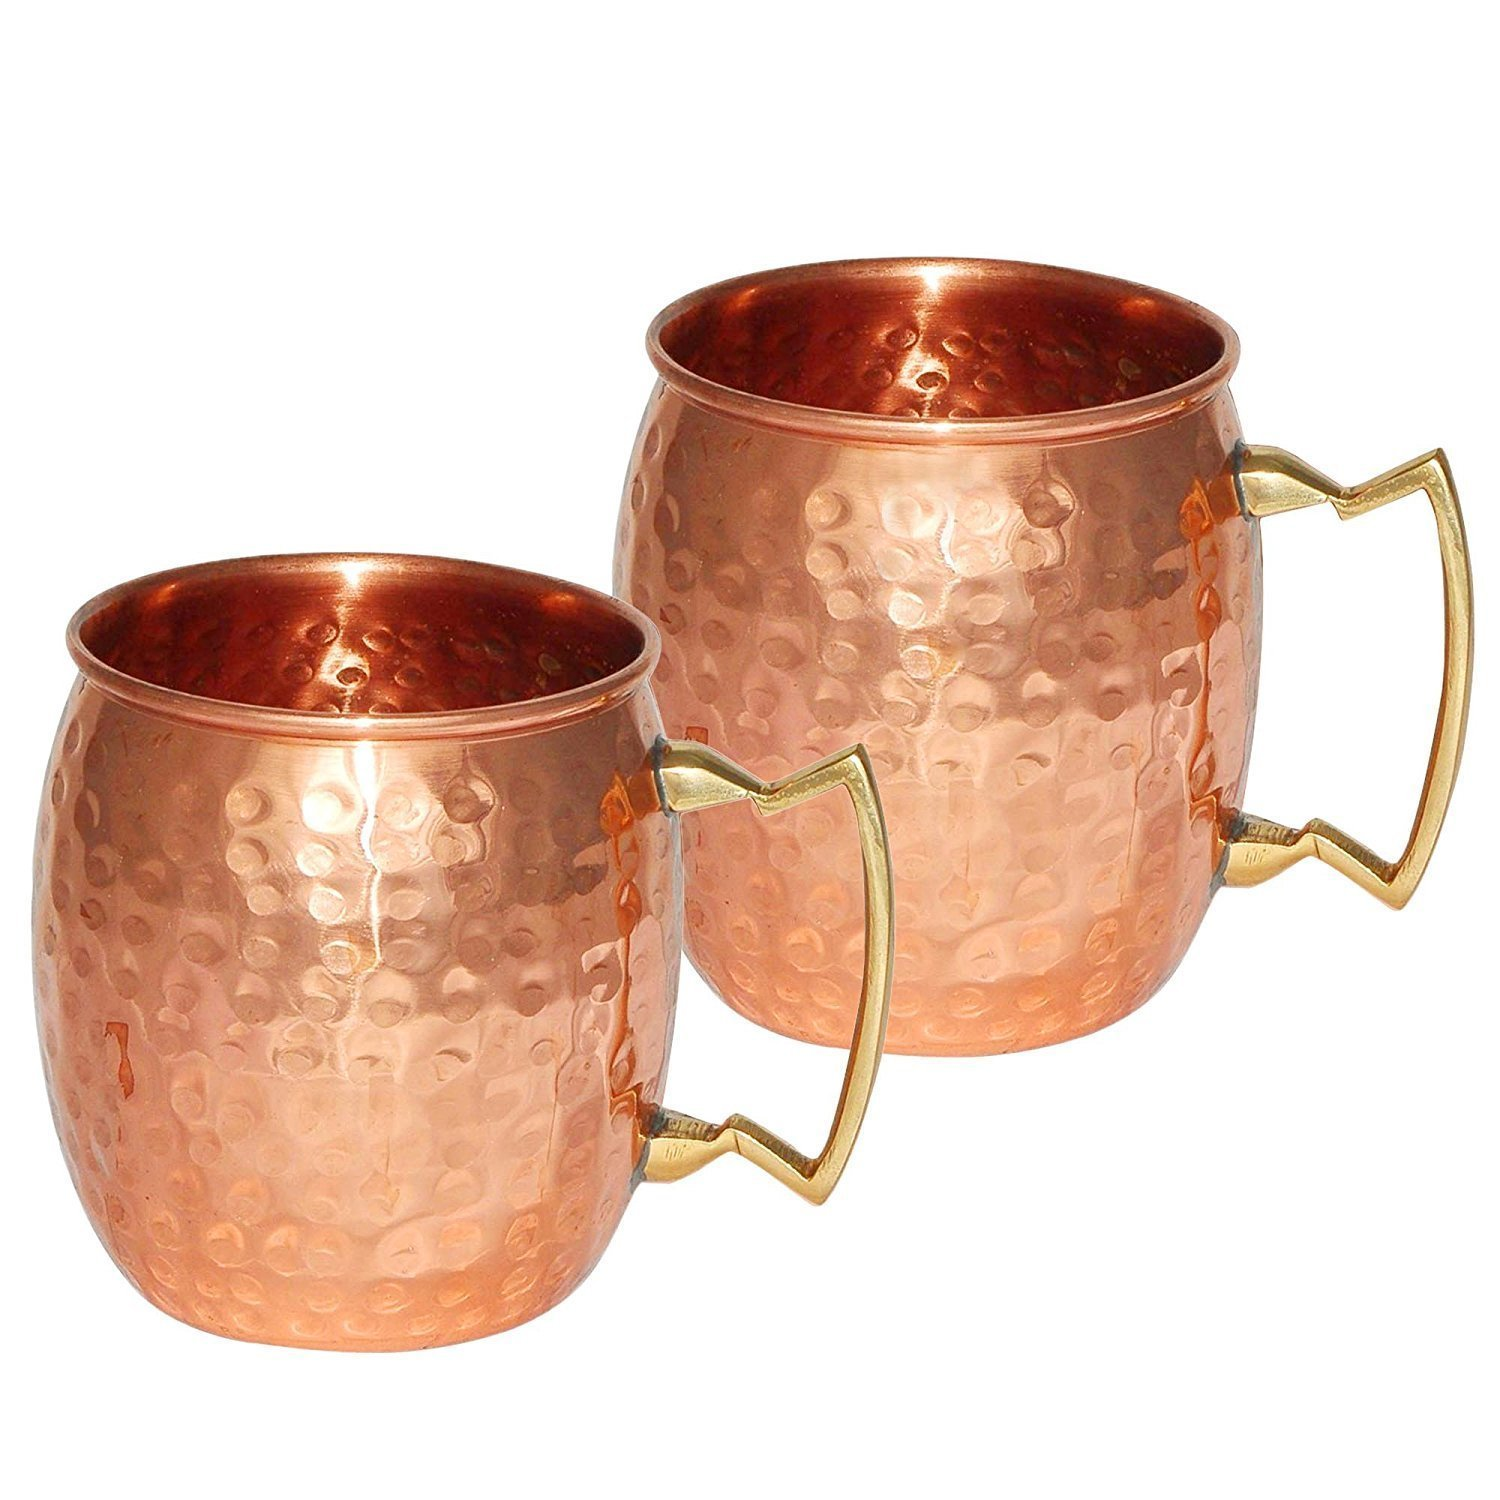 DreamKraft Hamme Copper Moscow Mule Mug Handmade Of Copper With Brass Handle 550 ML Gold by DreamKraft (Image #1)